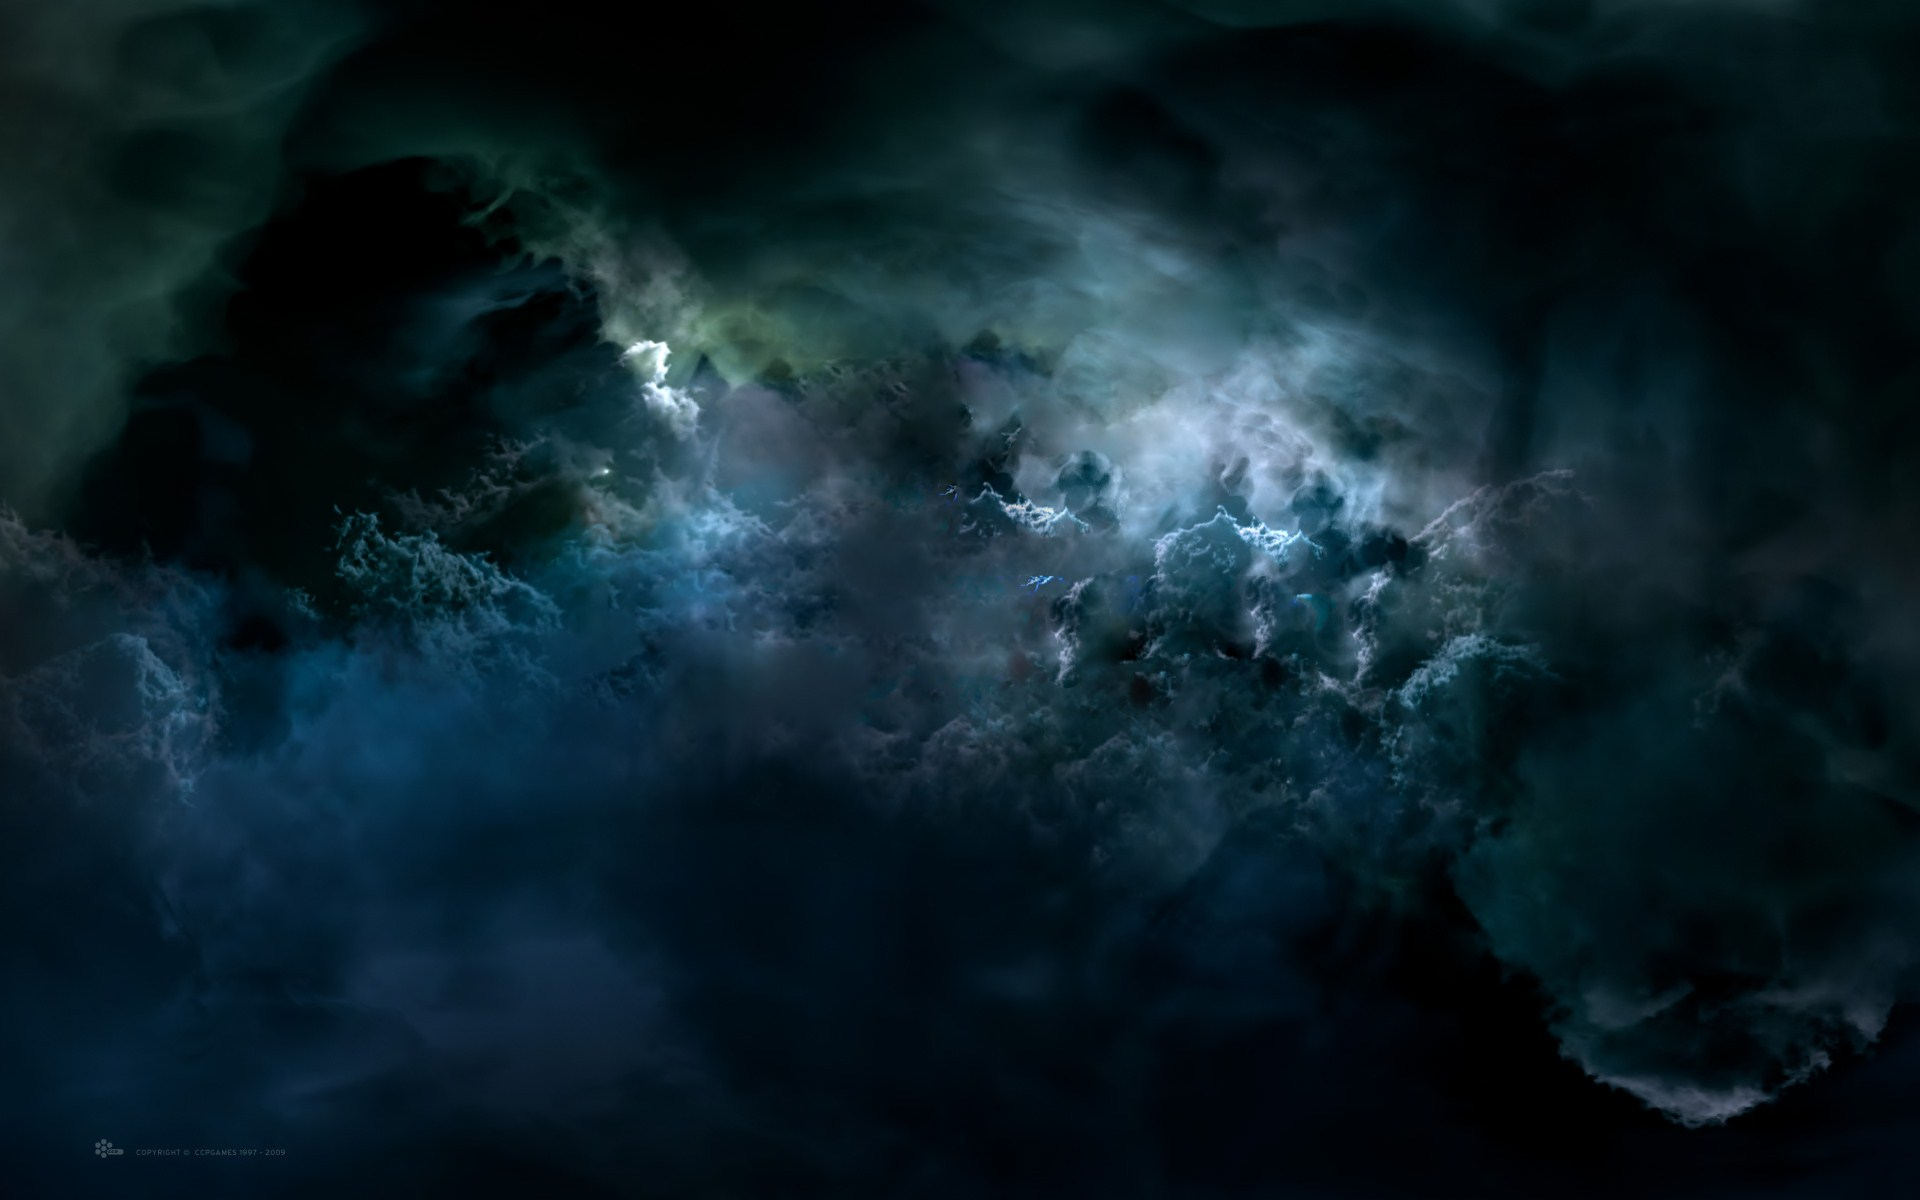 Black Wallpapers High Resolution: Black Planets Wallpaper 14 High Resolution Wallpaper